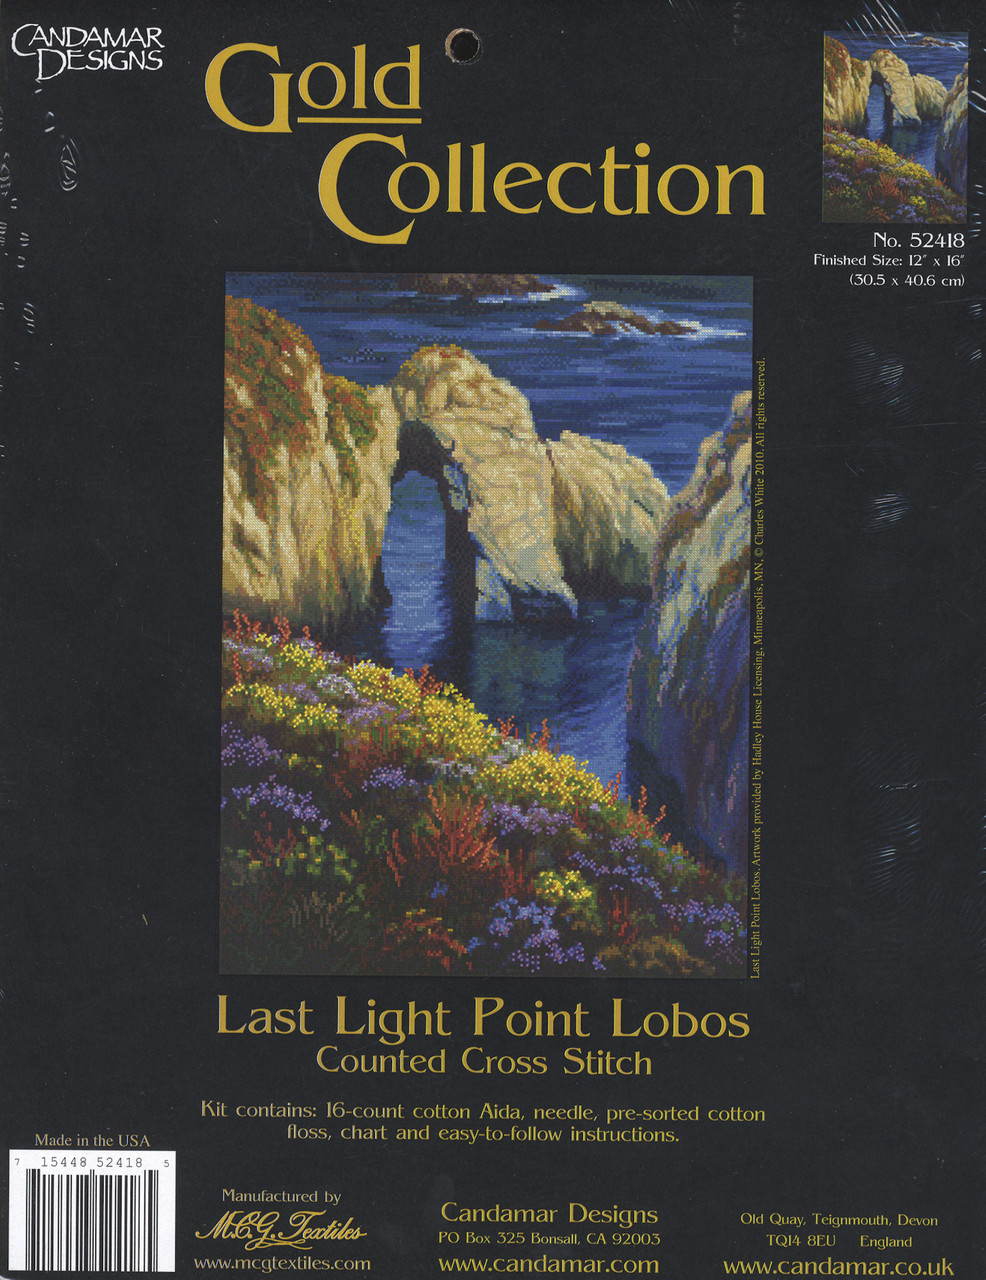 Gold Collection - Last Light Point Lobos